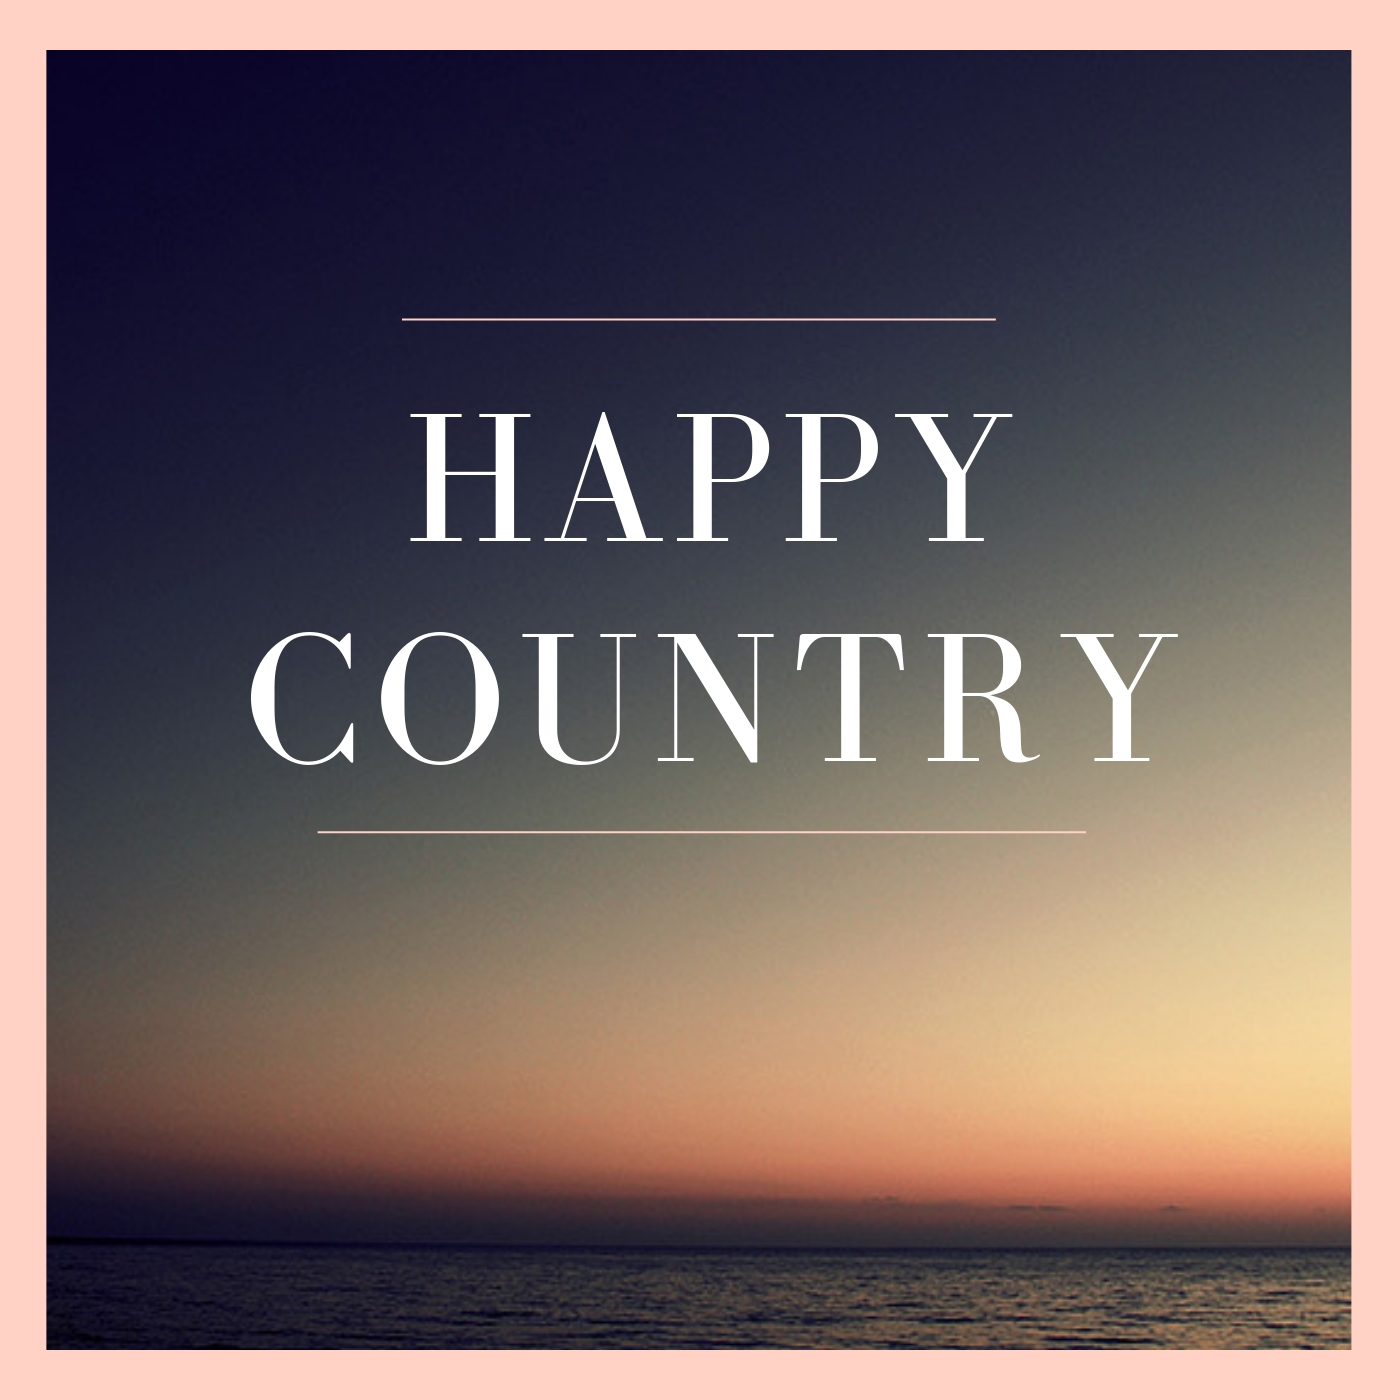 happy country - These are some of my favorite, feel-good, country songs. Think windows down, driving through your small town in the summertime.